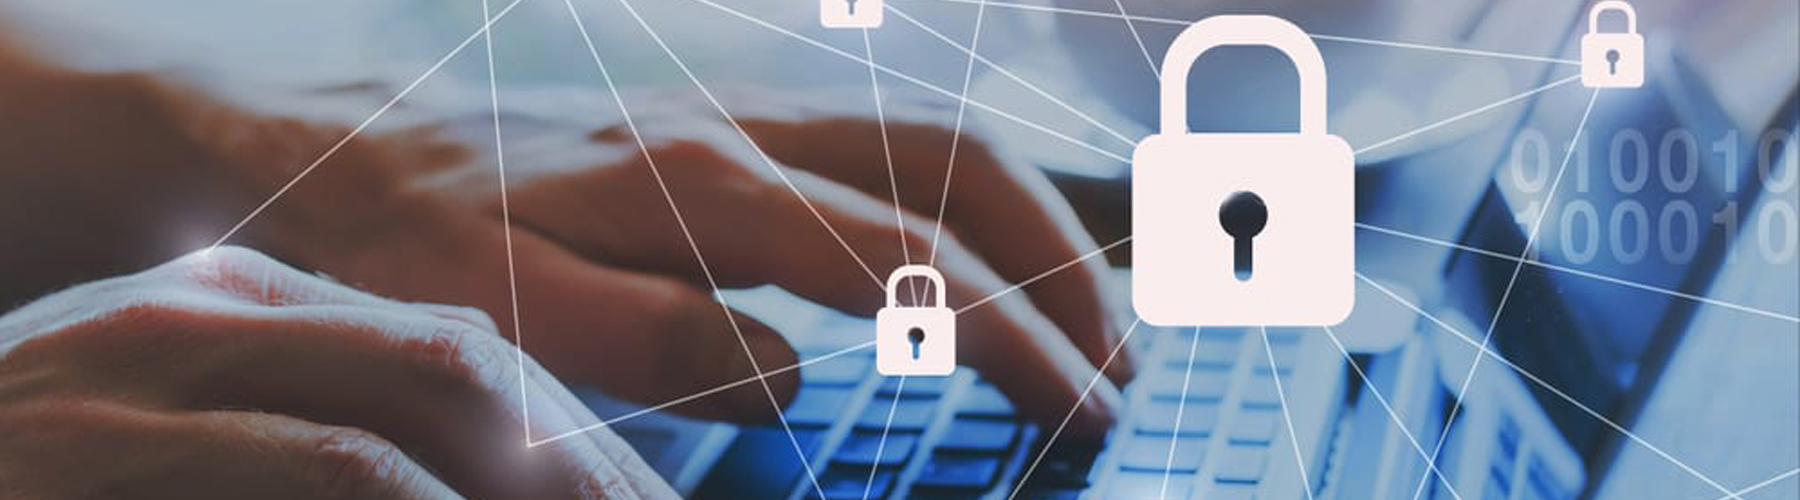 Small and Midsize business Cyber Security Tips Blog